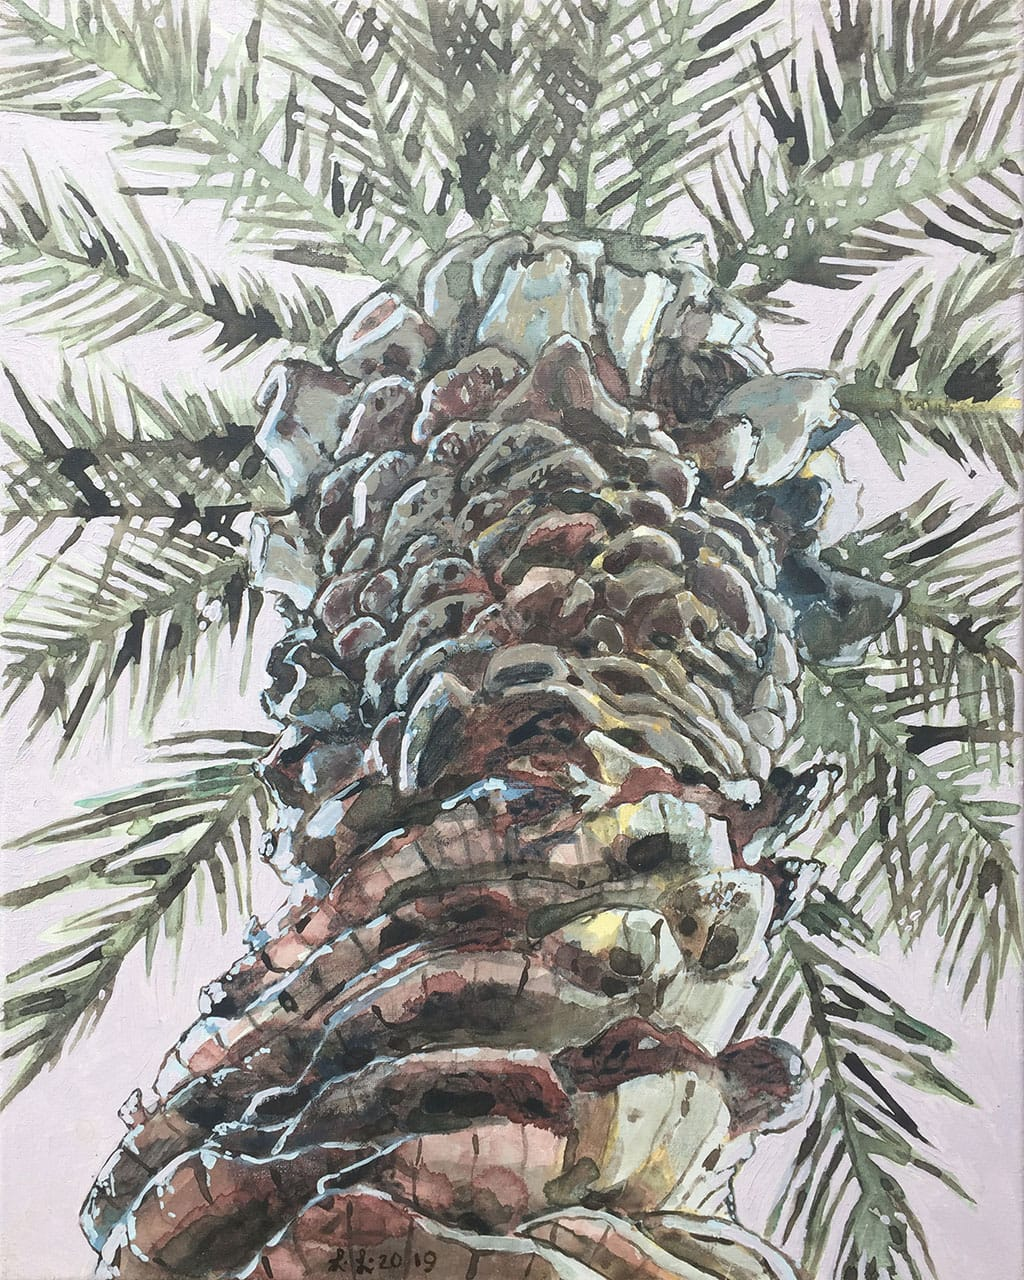 Palm Trunk, oil on canvas, 20x16inches